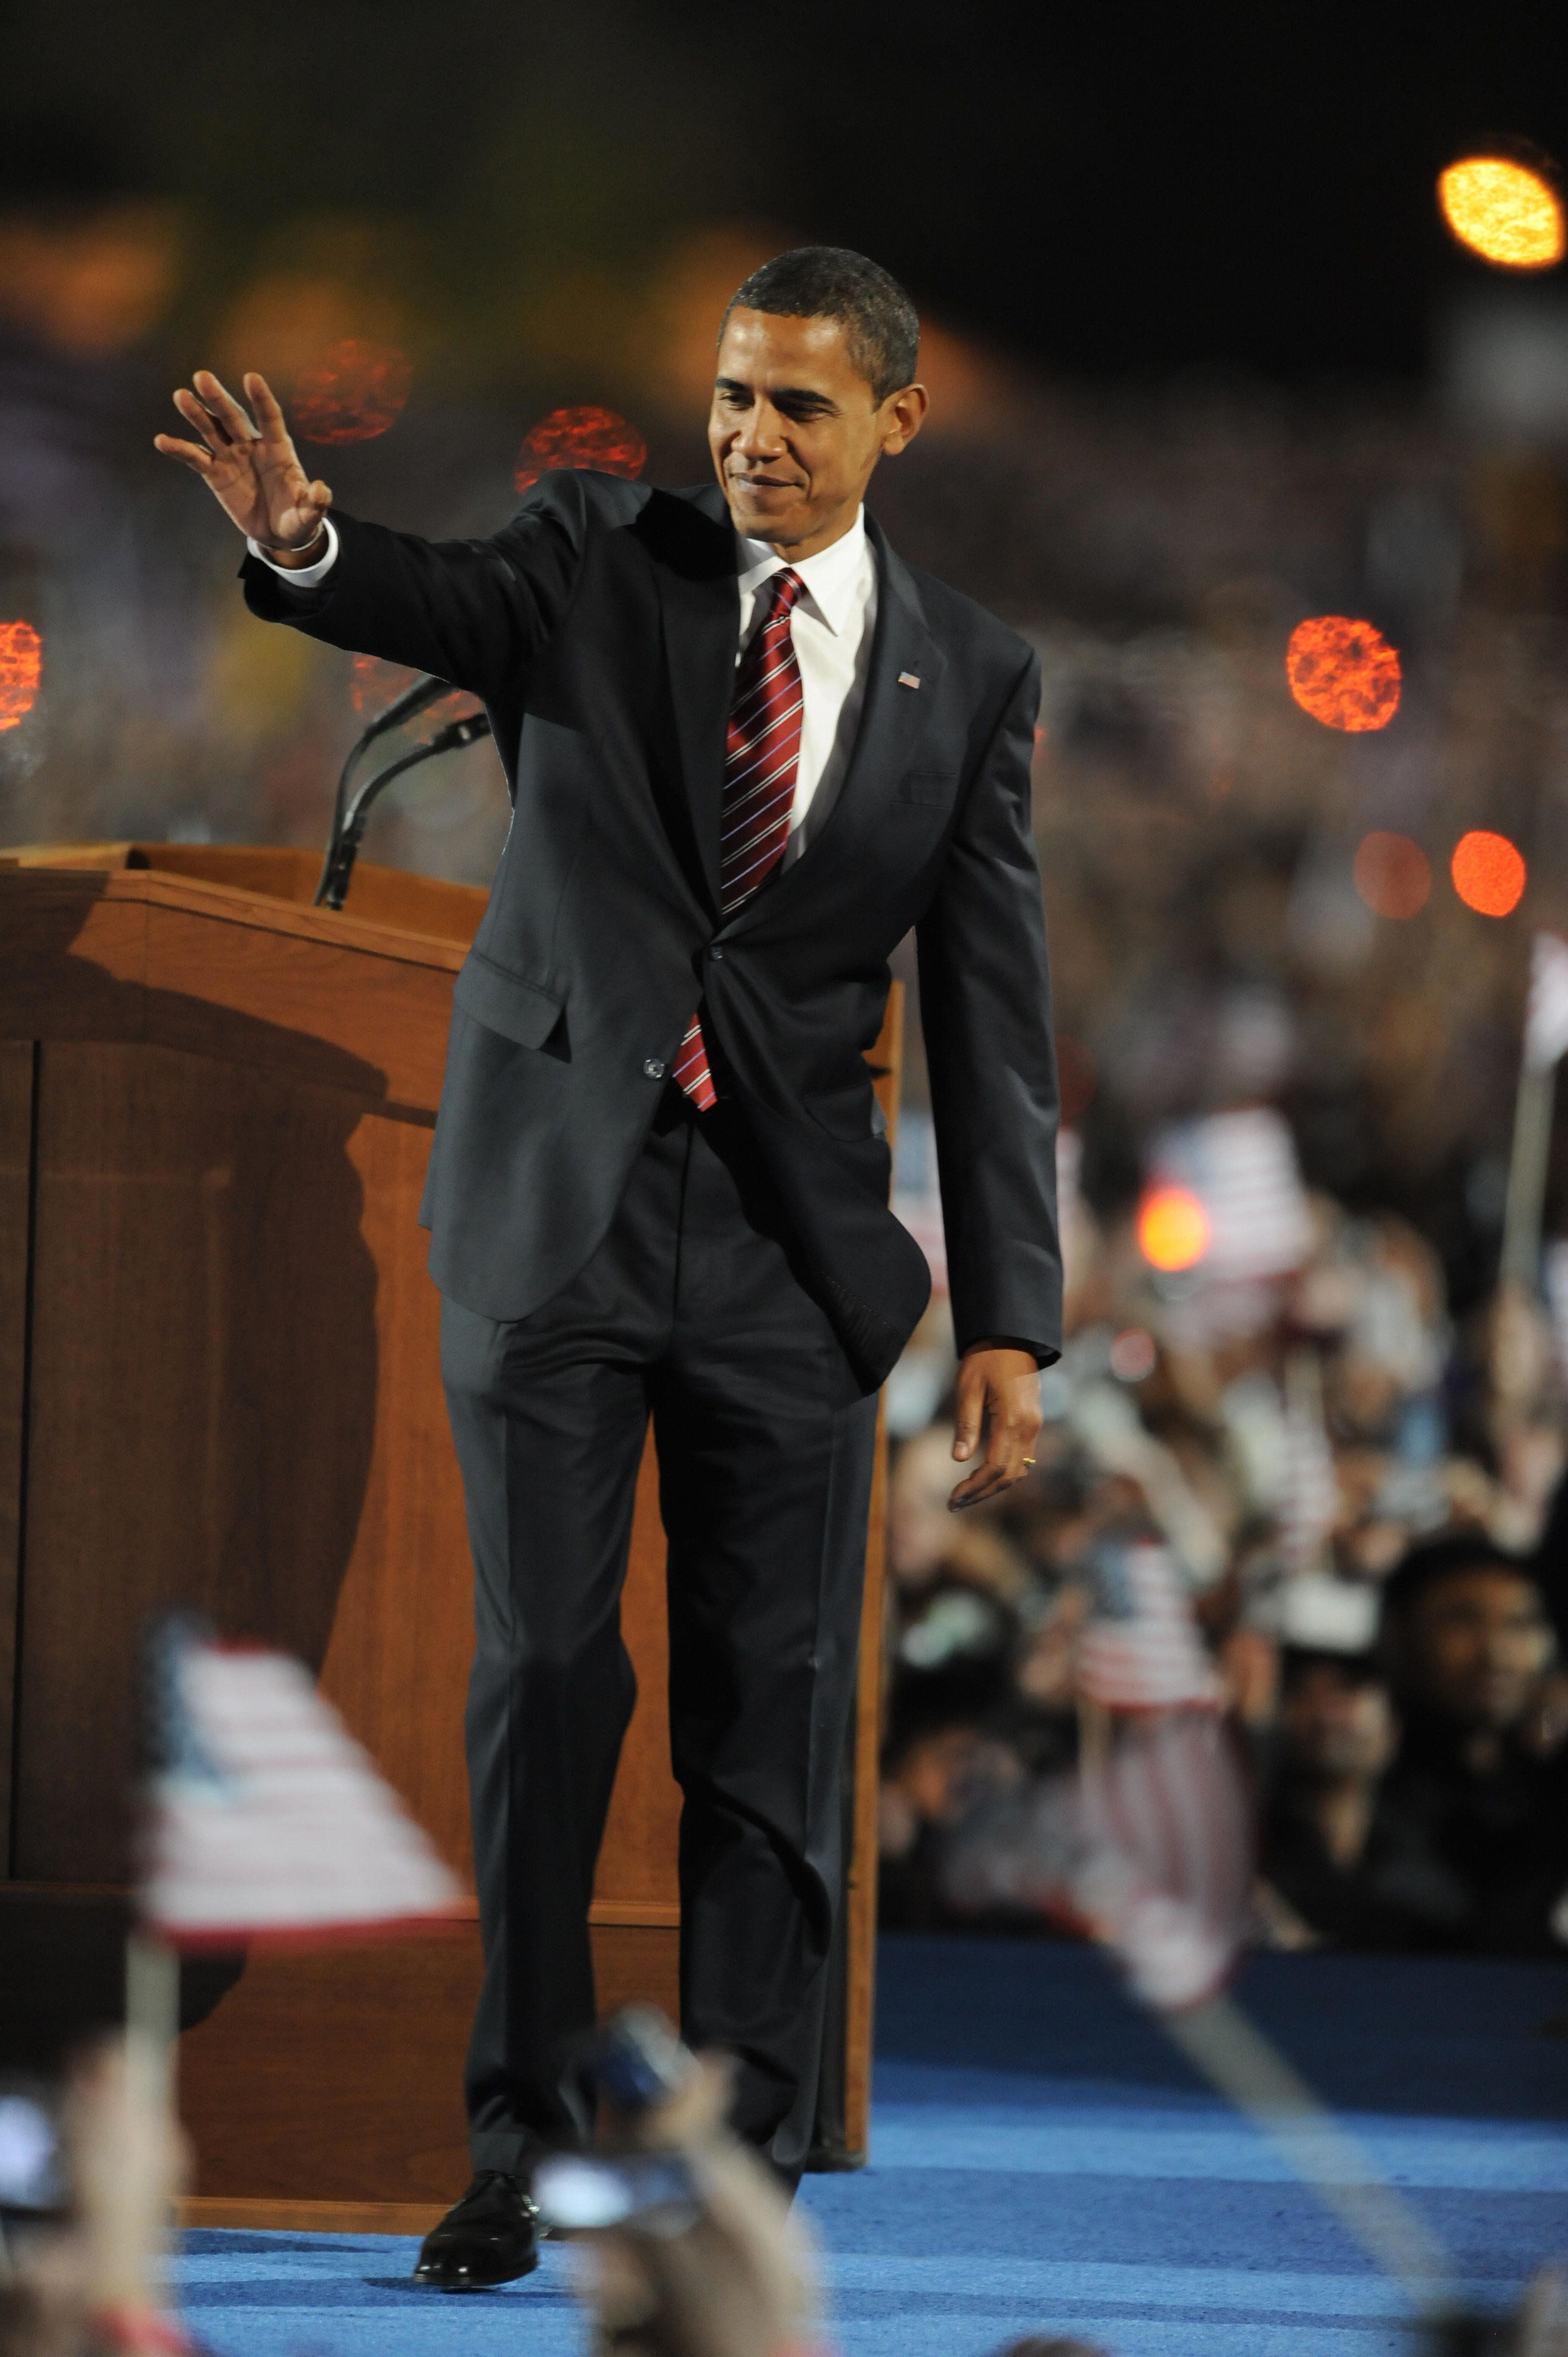 President-elect Barack Obama addresses supporters during his election night rally at Grant Park on November 4, 2008 in Chicago, Illinois. AFP PHOTO/Jewel SAMAD (Photo credit should read JEWEL SAMAD/AFP/Getty Images)